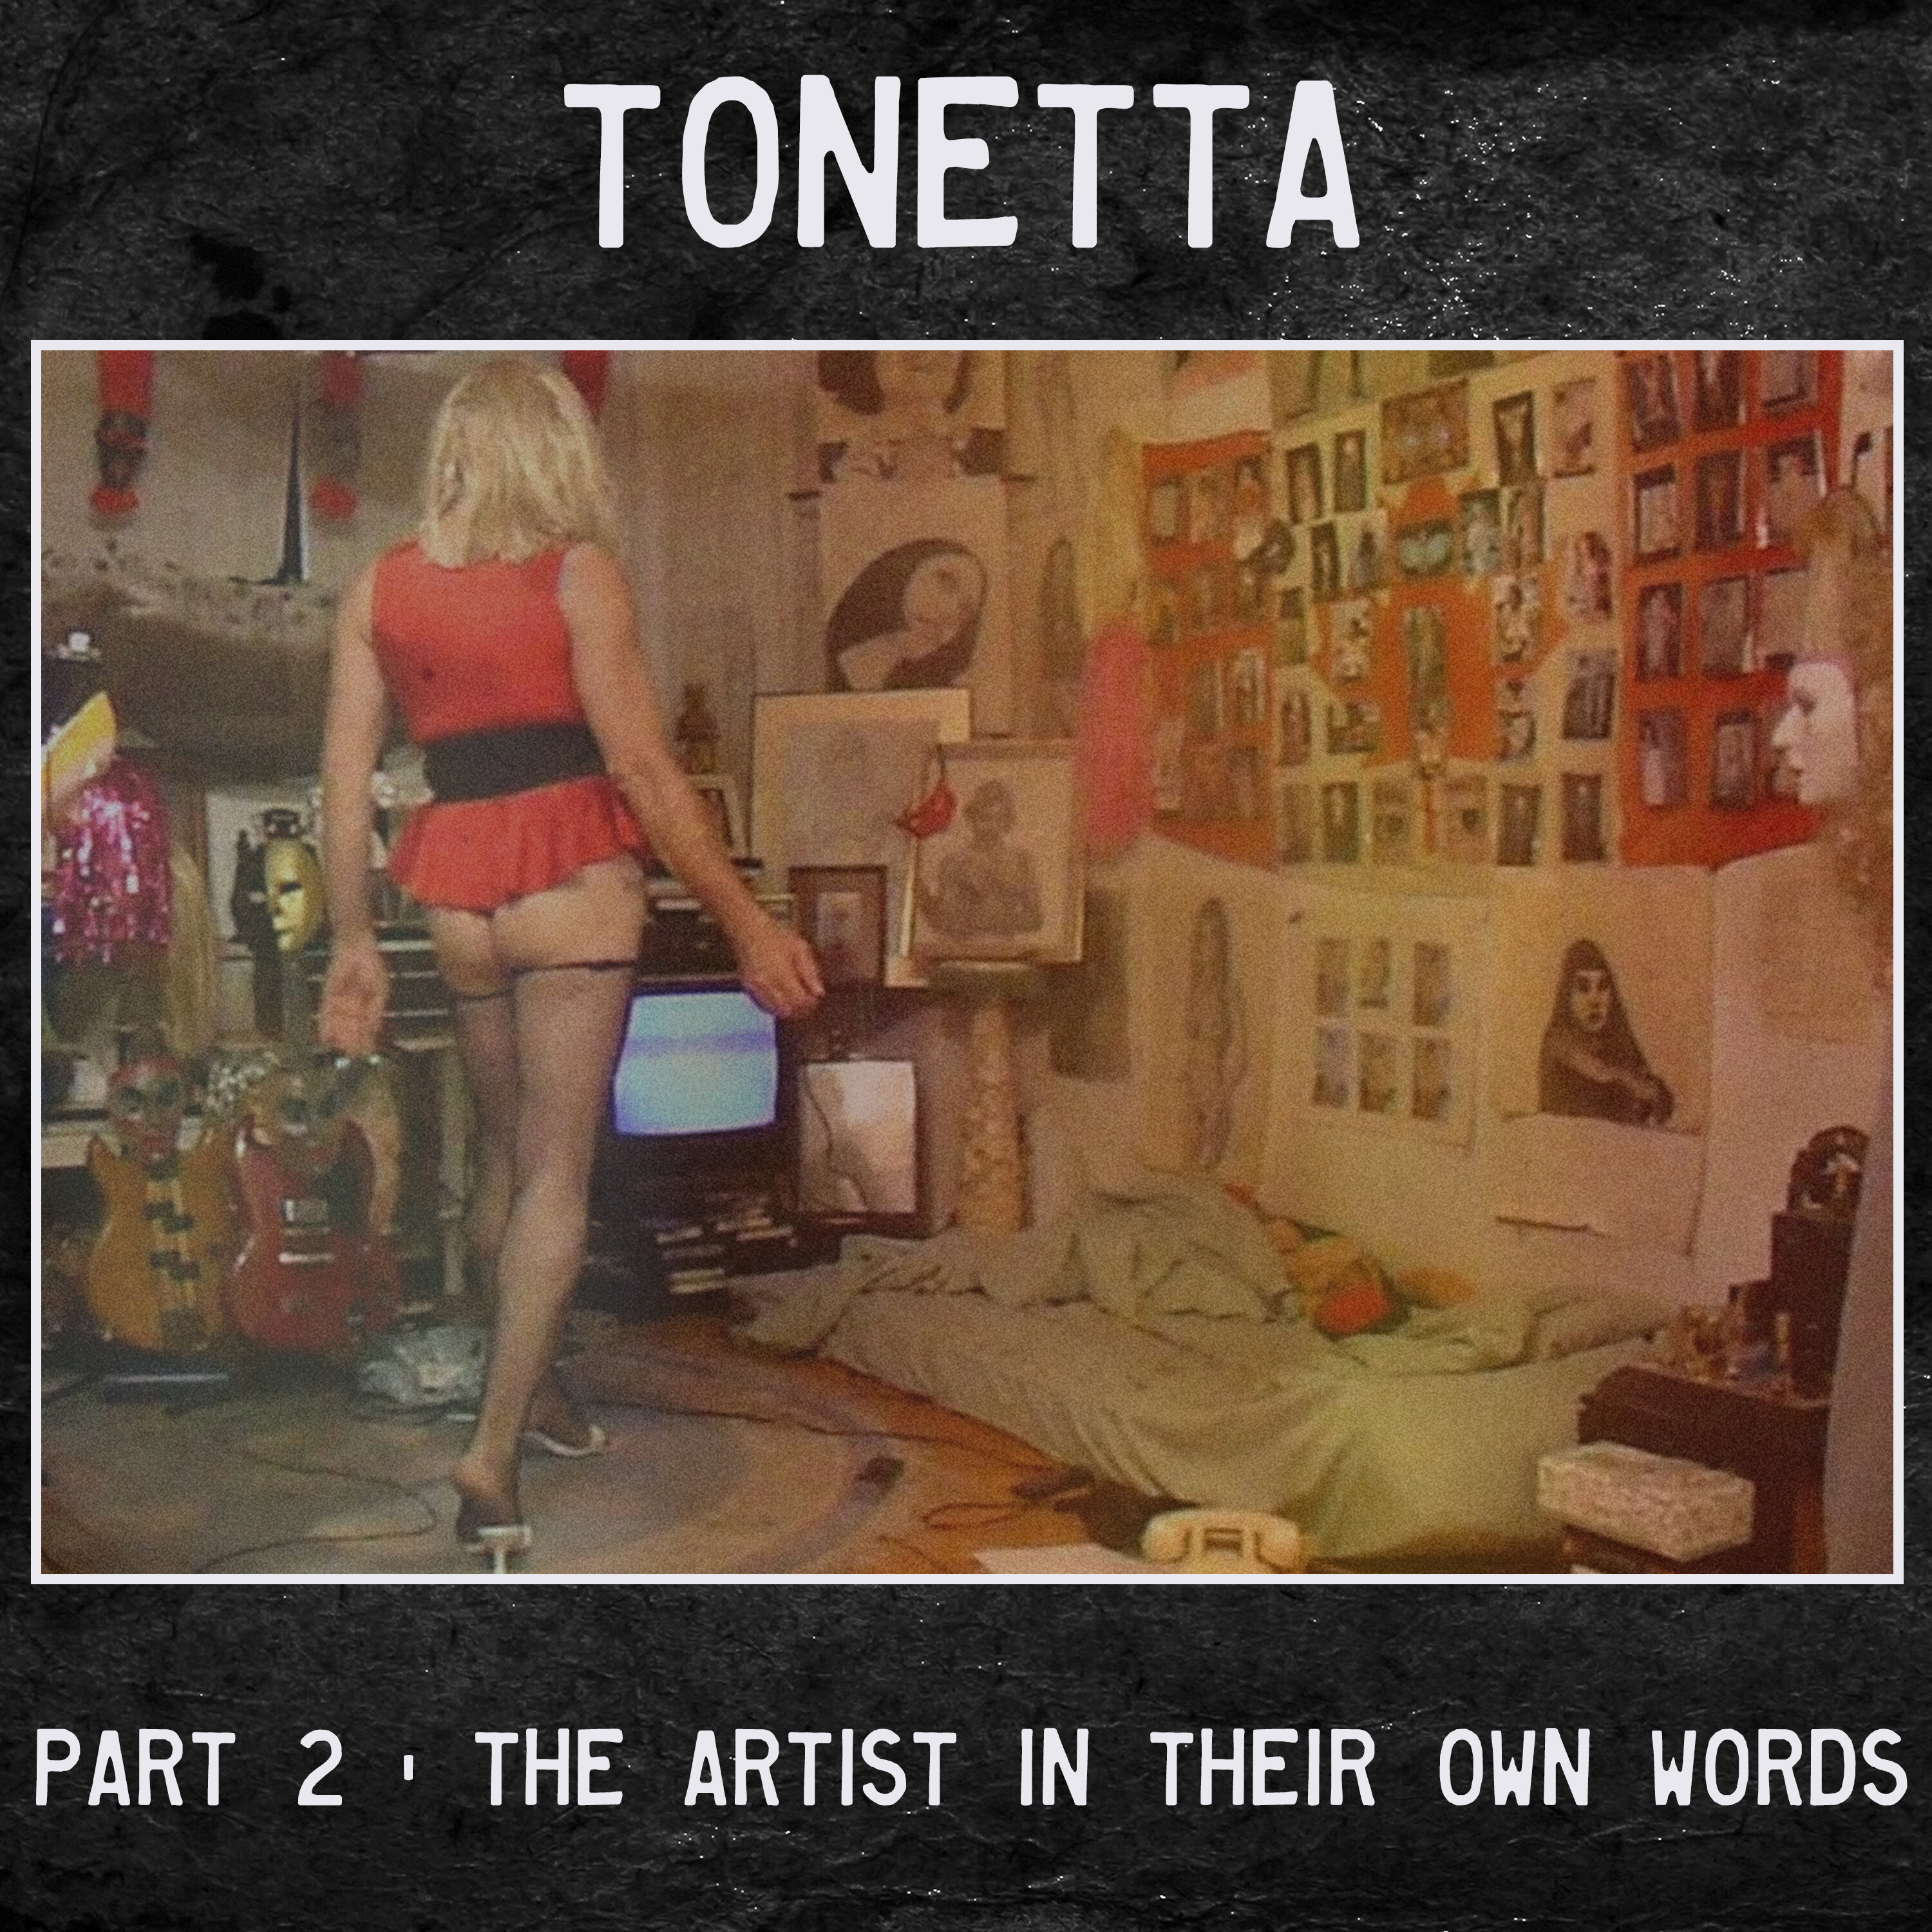 Tonetta - 2 - the Artist in Their Own Words